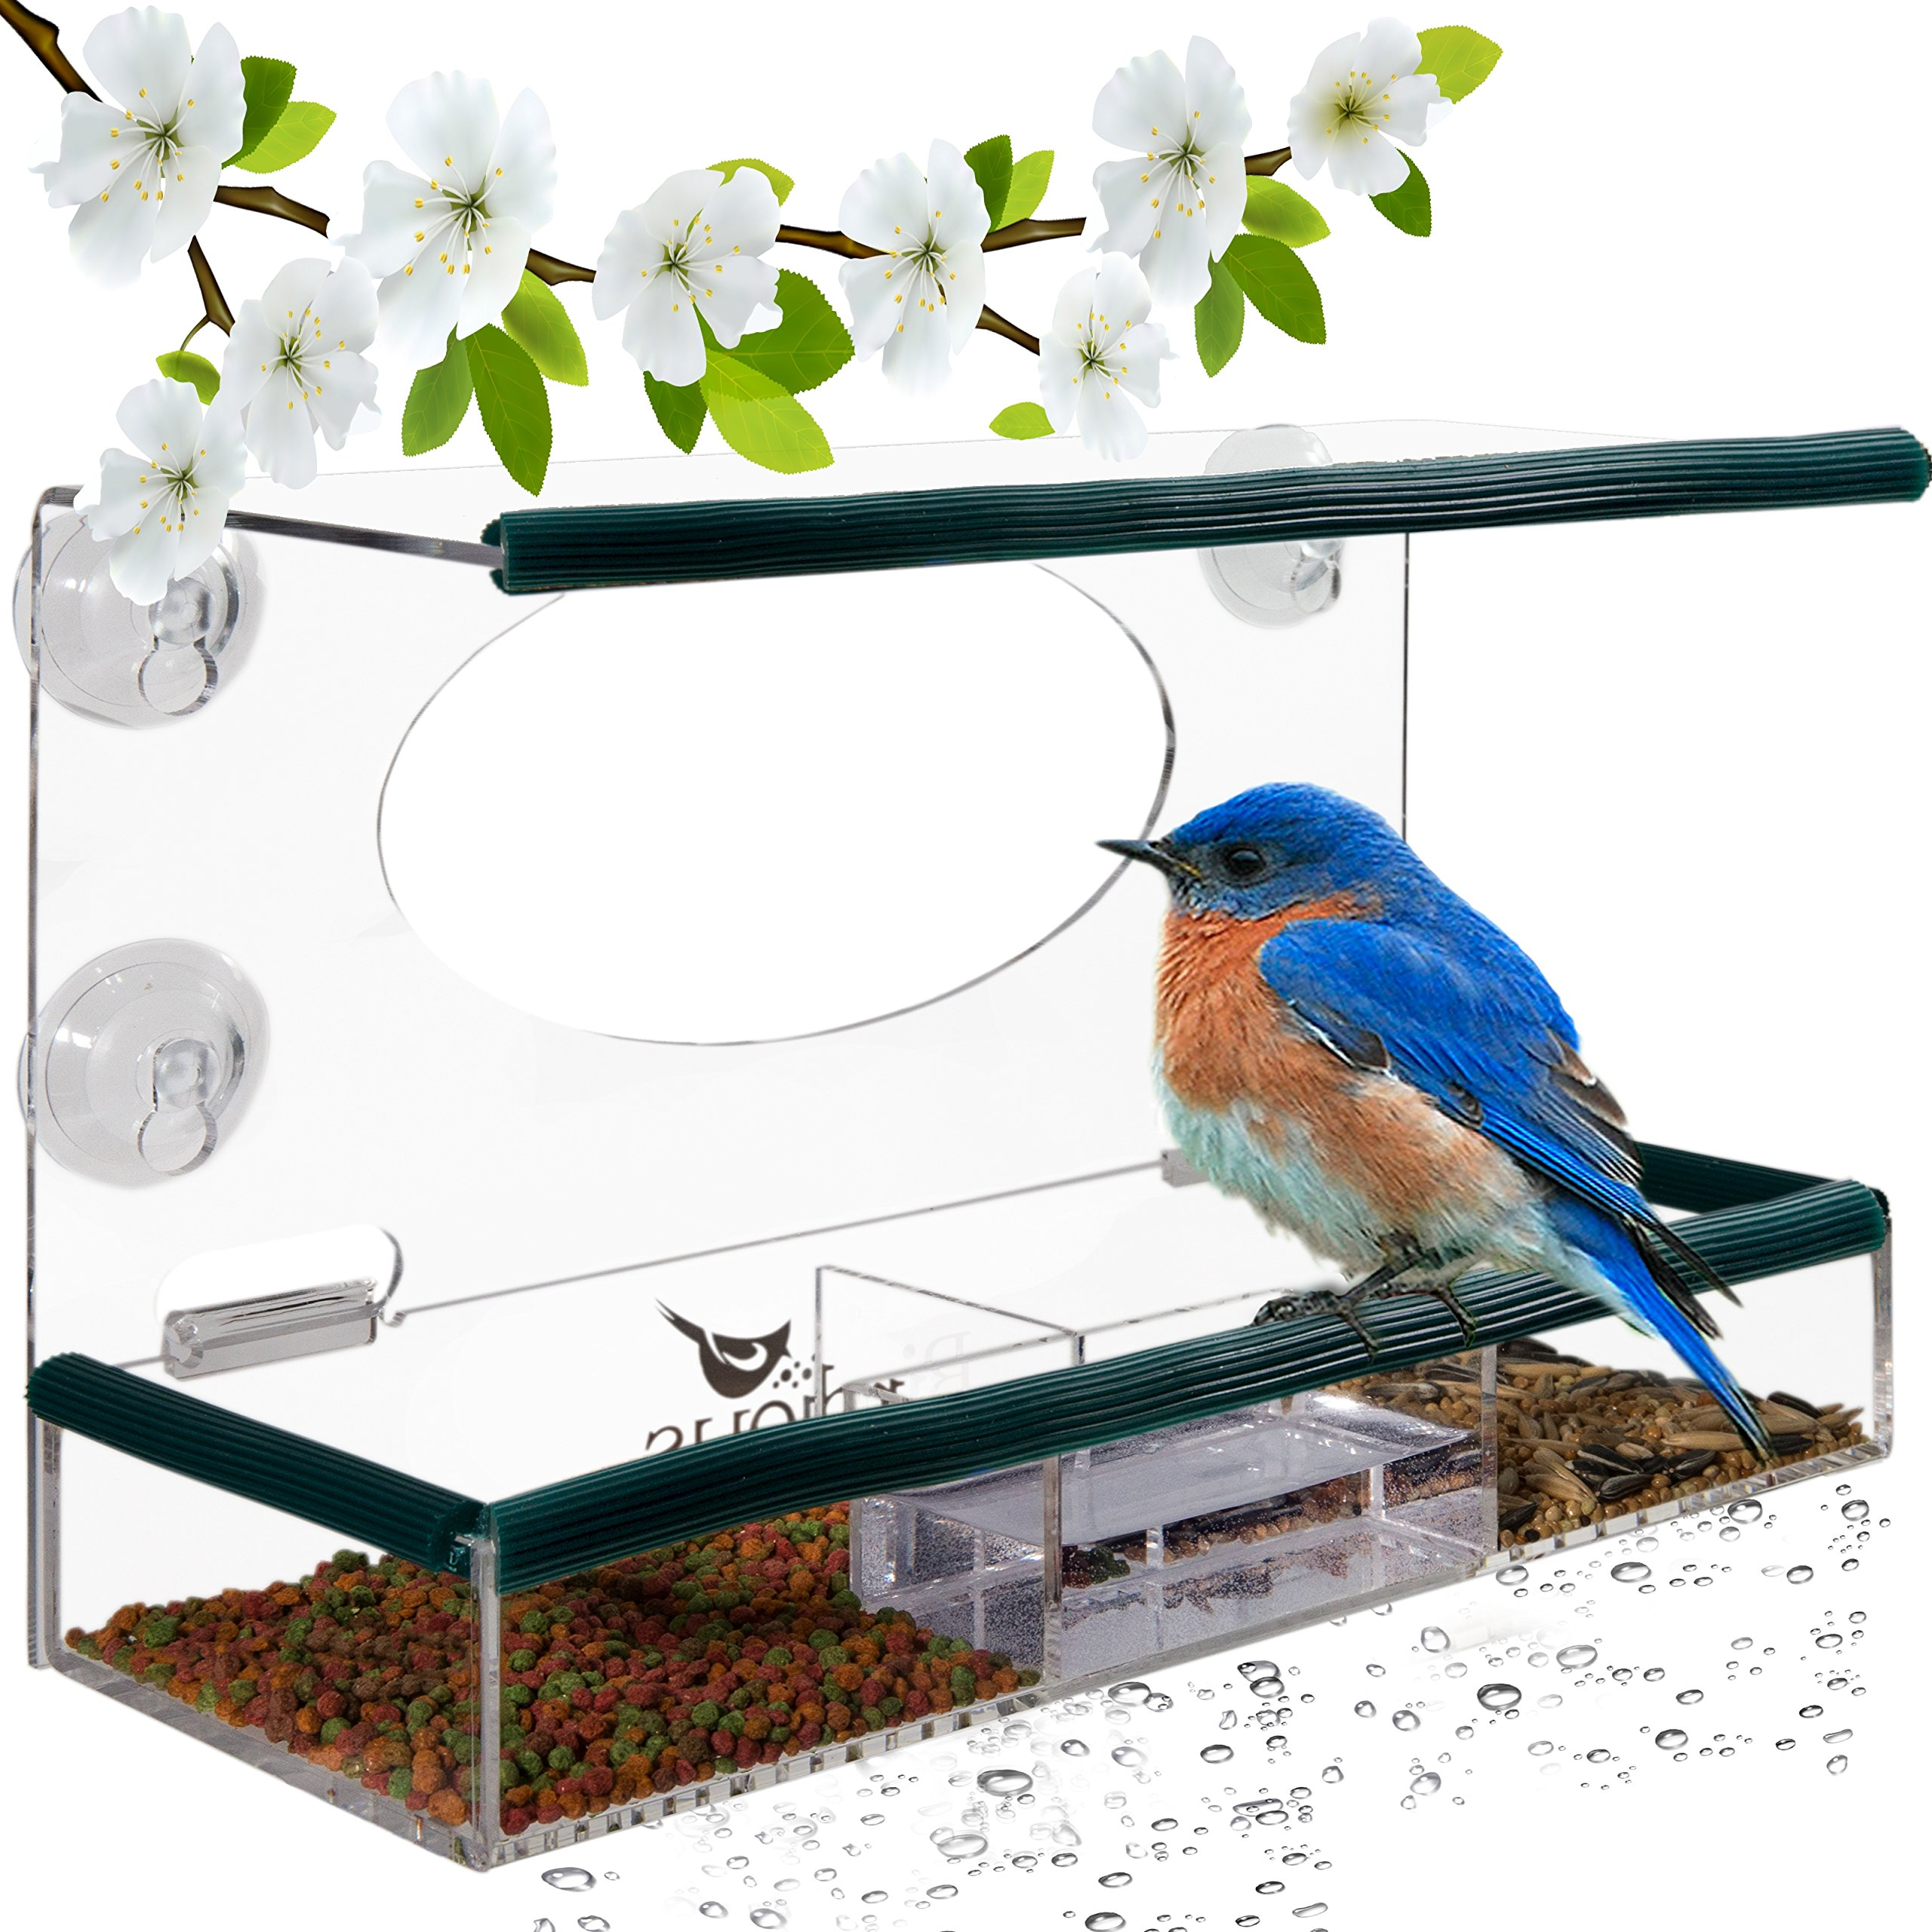 Birdious Wild Window Bird Feeder Outside: Enjoy Unique Watch Small & Large Birds. Clear See Through, Easy Mounted 4 Strong Suction Cups, Squirrel Proof Seed Tray. Unusual Gifts